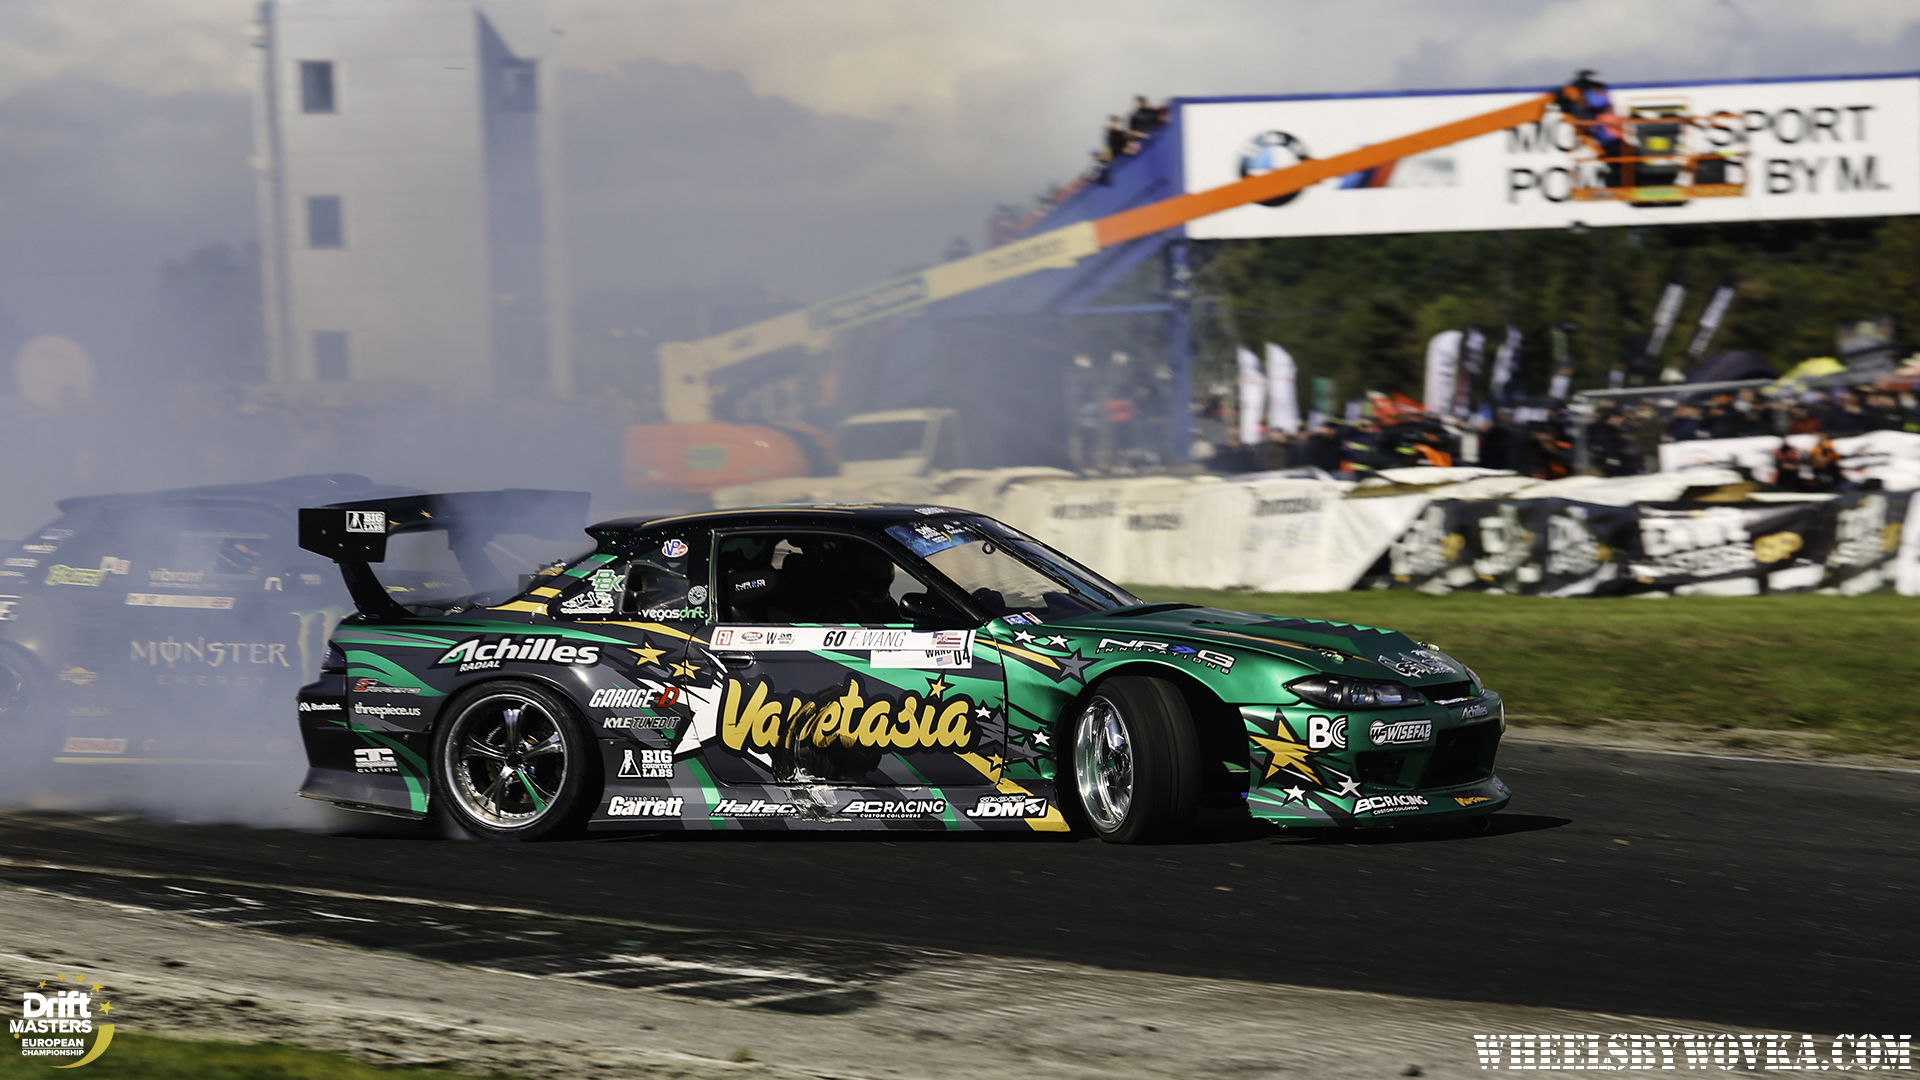 drift-masters-european-championship-mondello-by-wheelsbywovka-9